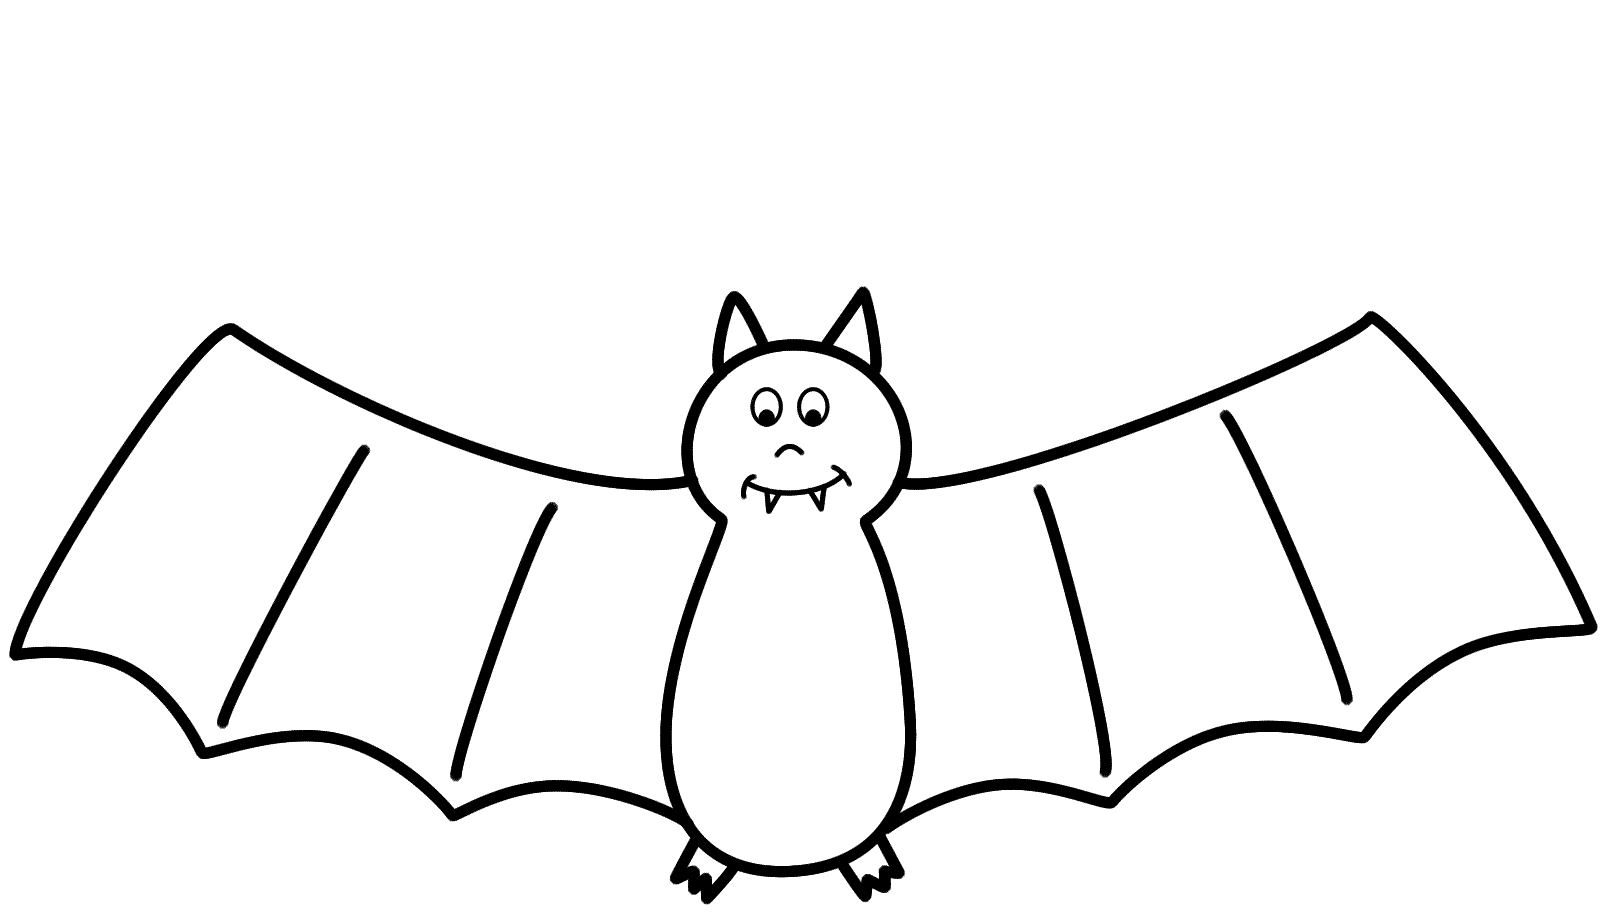 Limited pictures for kids. Bat clipart printable